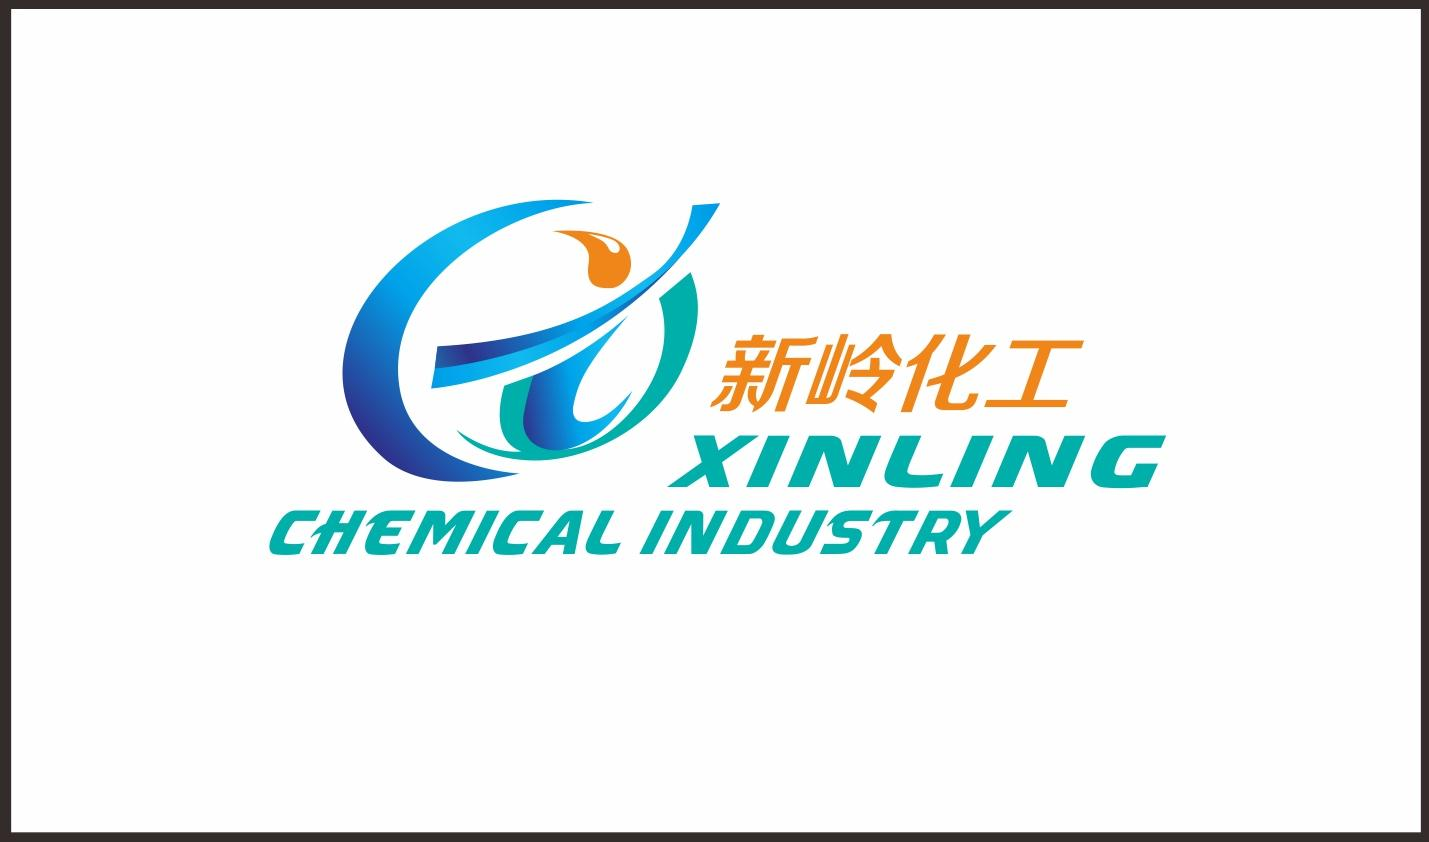 Chemical Industry Co Ltd